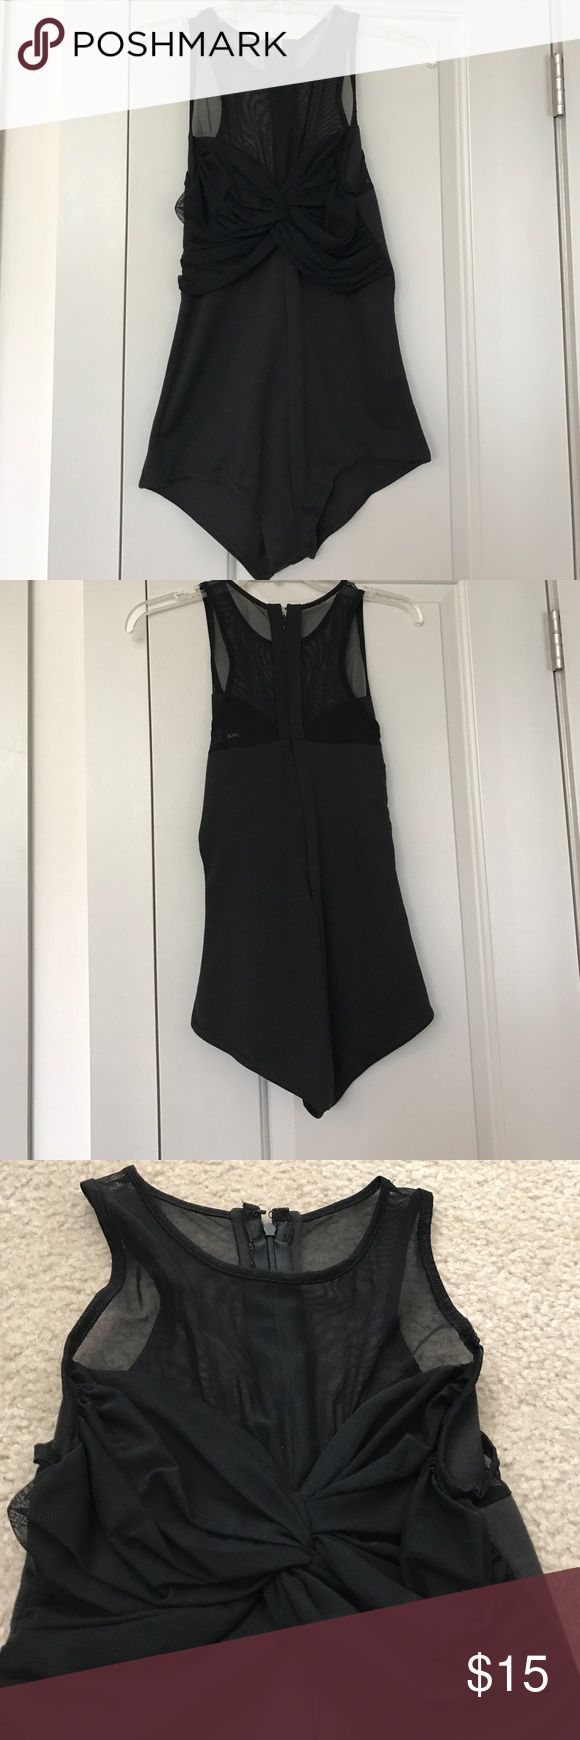 Mesh topped leotard 1 piece body suit with mesh top ASOS Other